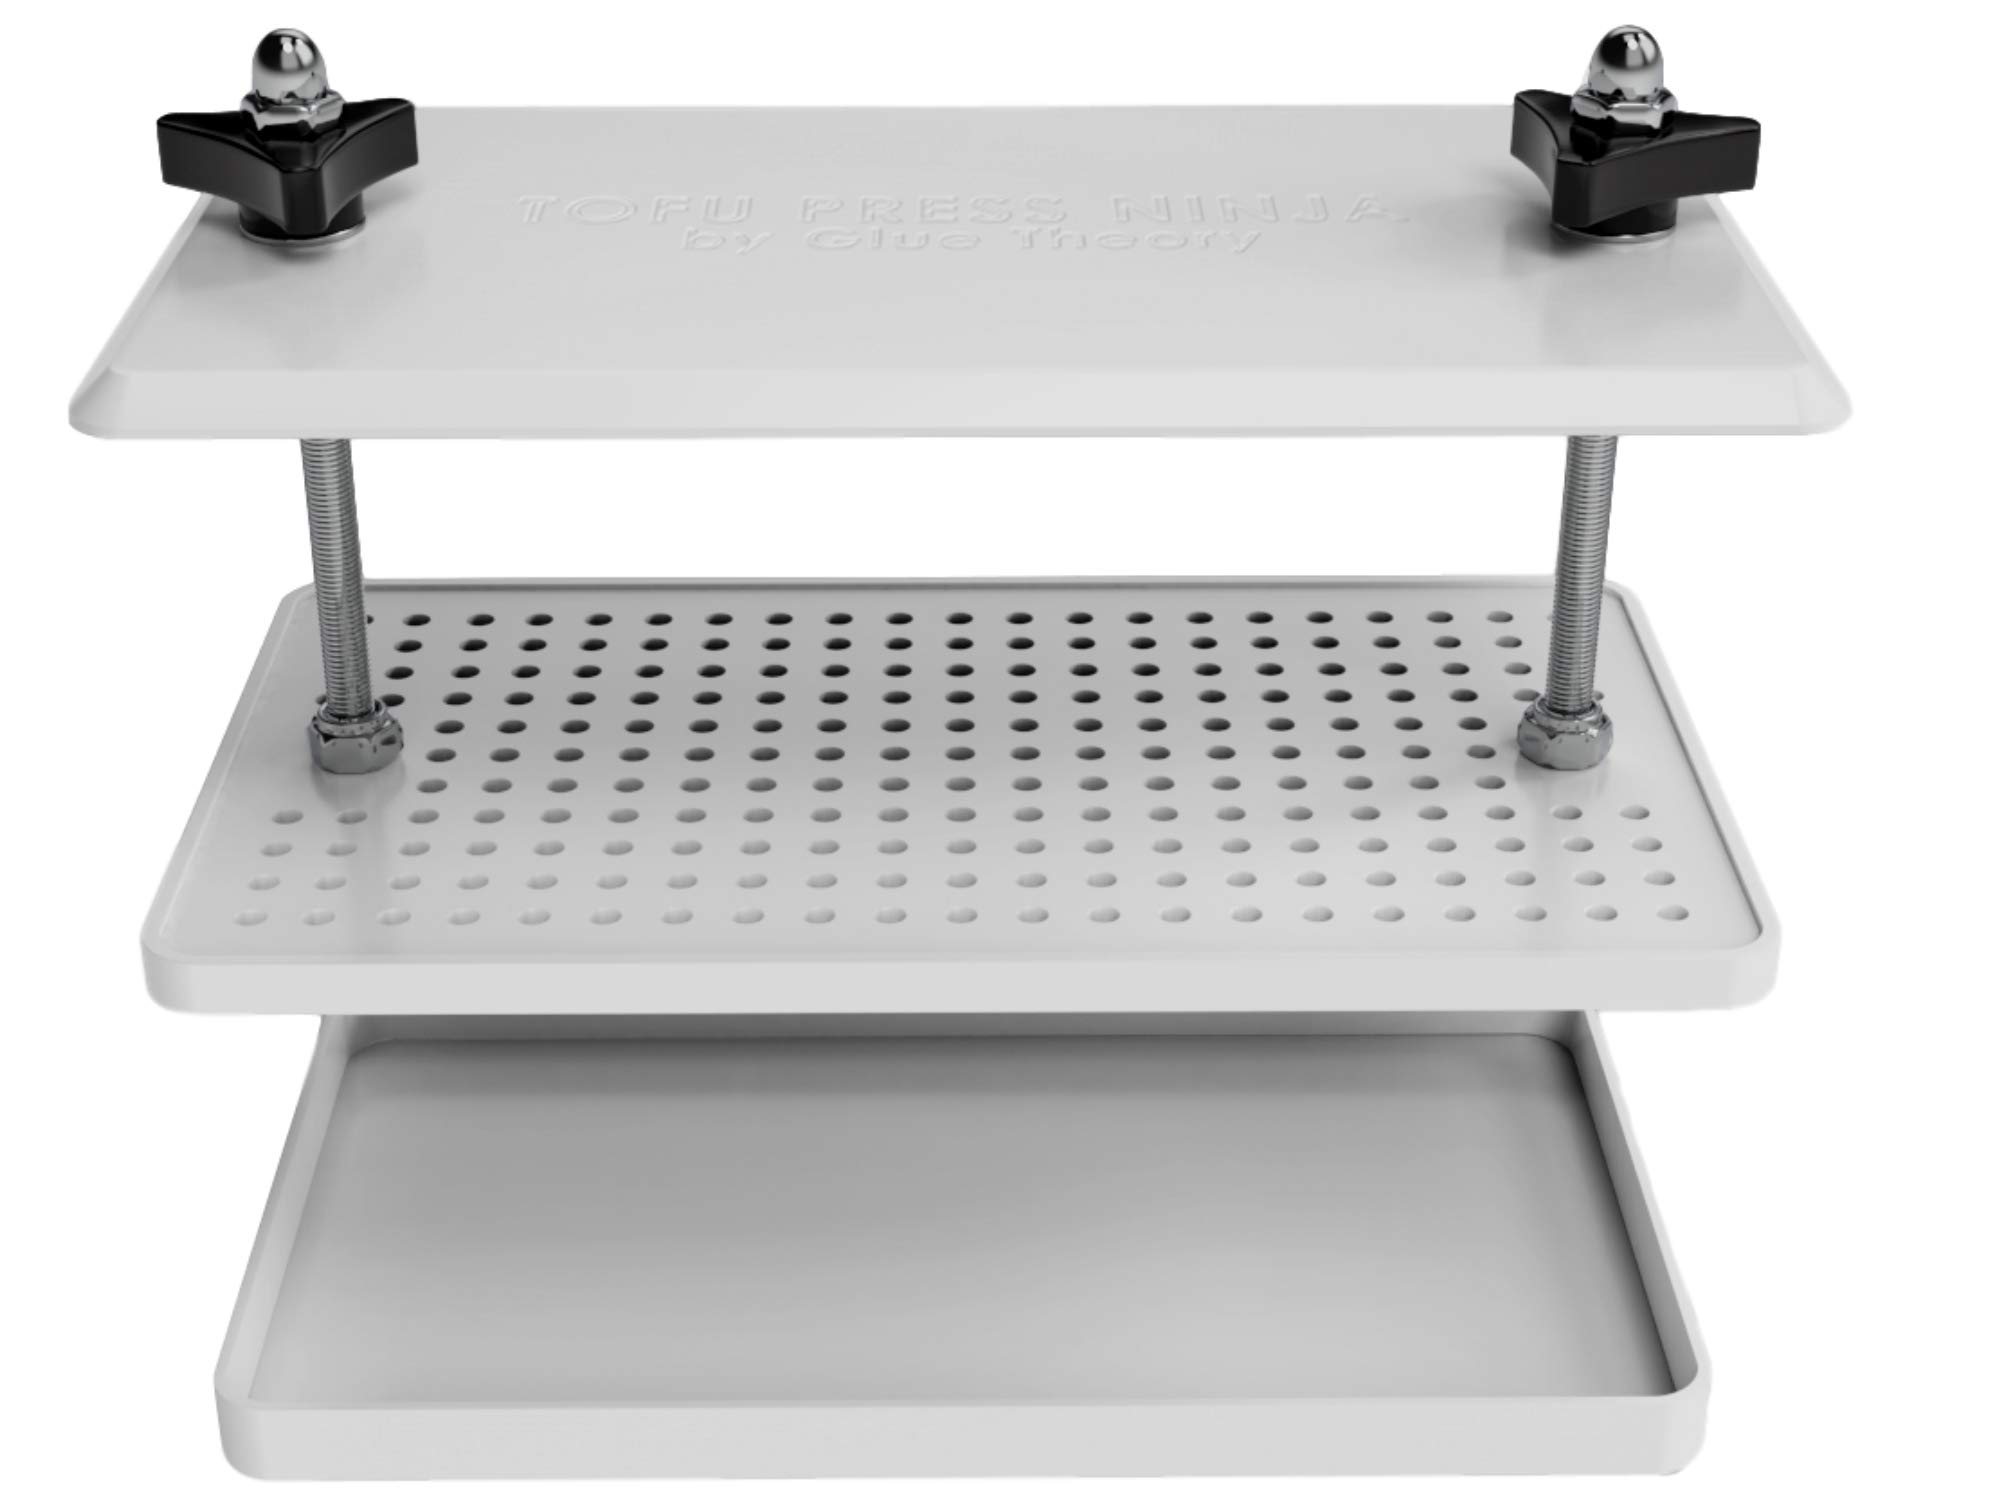 Simple Drip Tofu Press - The Easiest Tofu Press That Removes Water From A Tofu Block. Includes A Tofu Strainer And Attachable Drip Tray To Catch All Water Drippings.